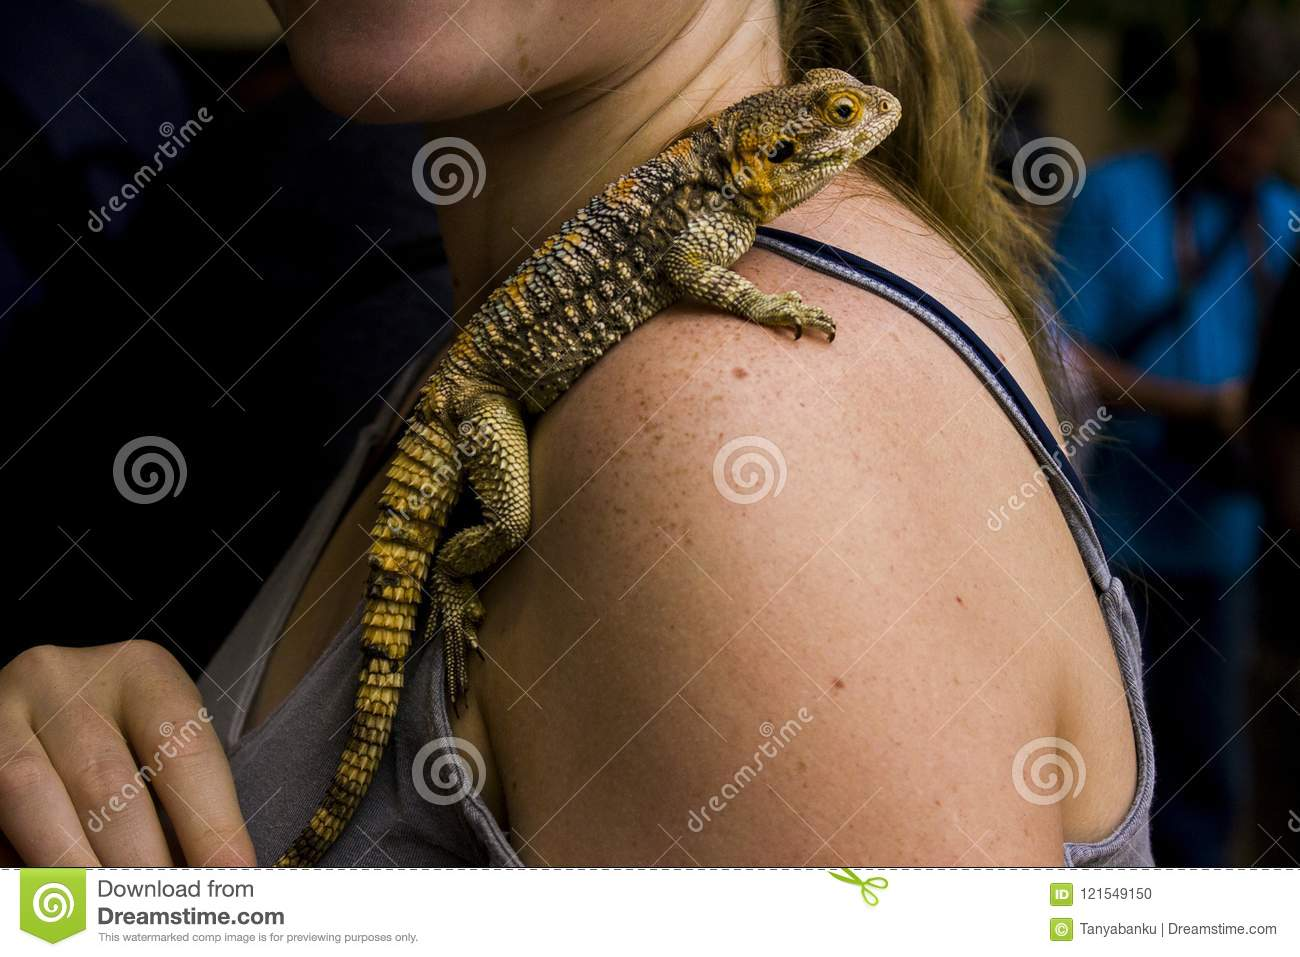 Lizard on a woman shoulder close up photography